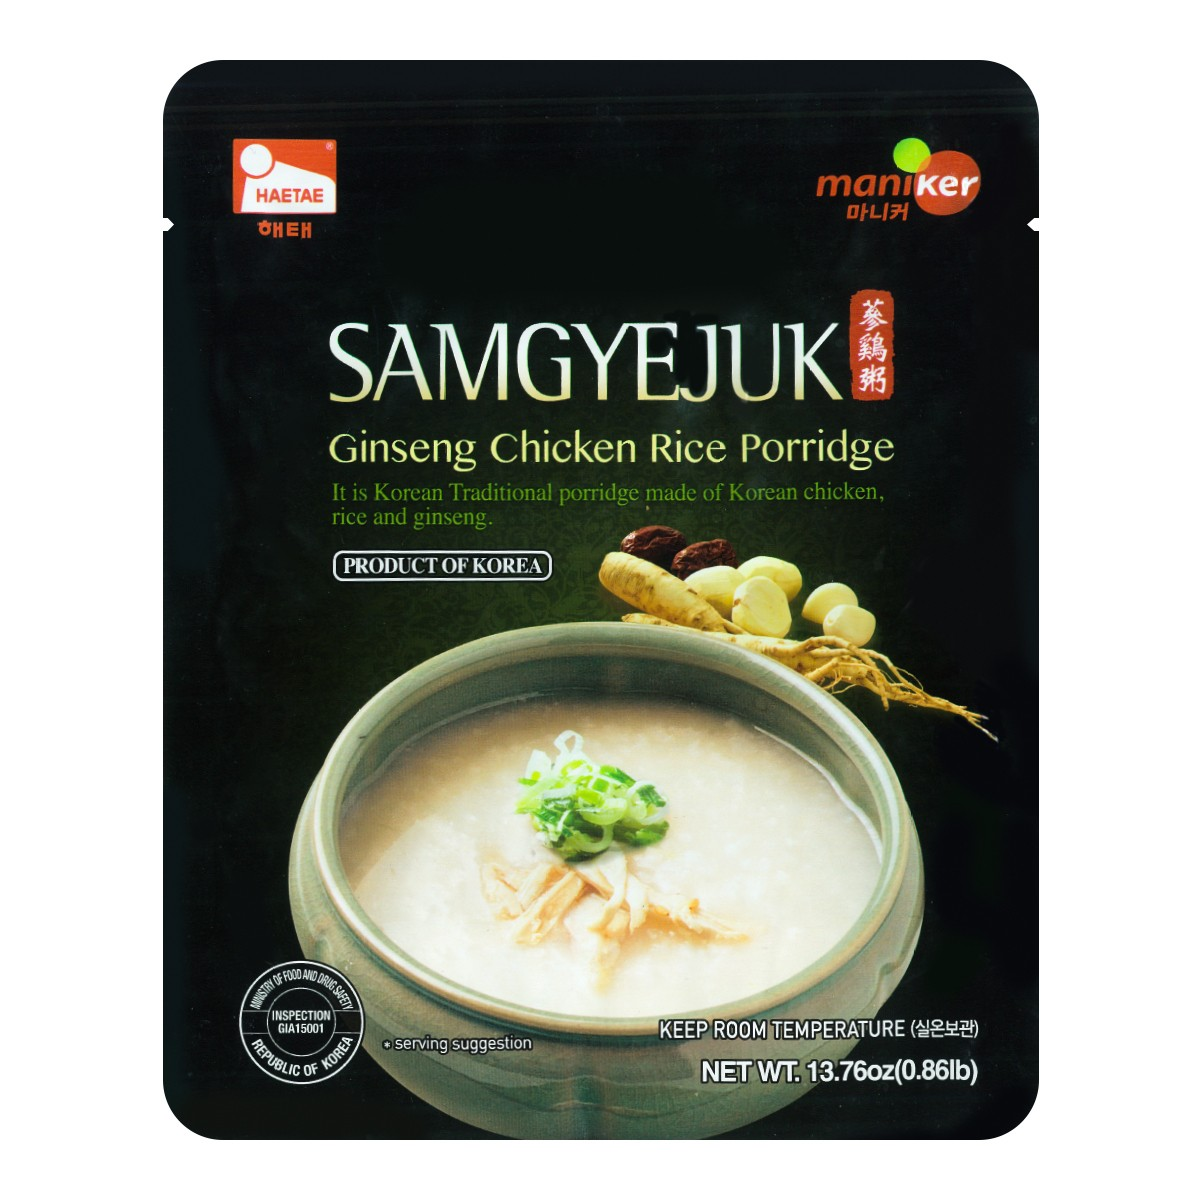 Maniker Ginseng Chicken Rice Porridge 390g